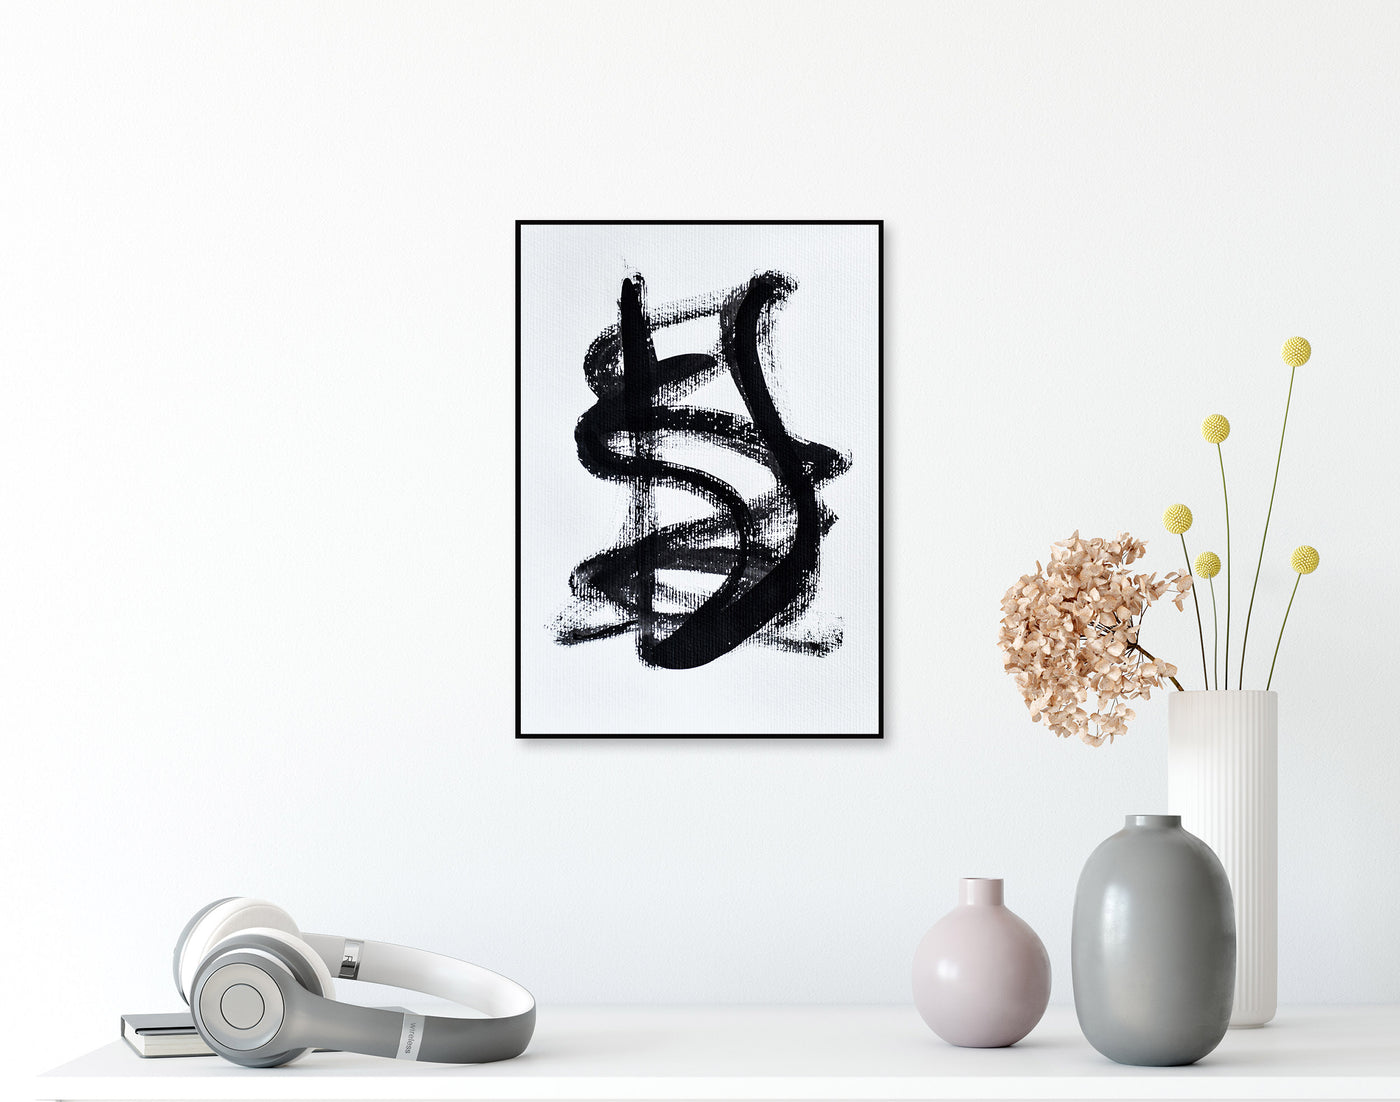 Black and white abstract art for sale online